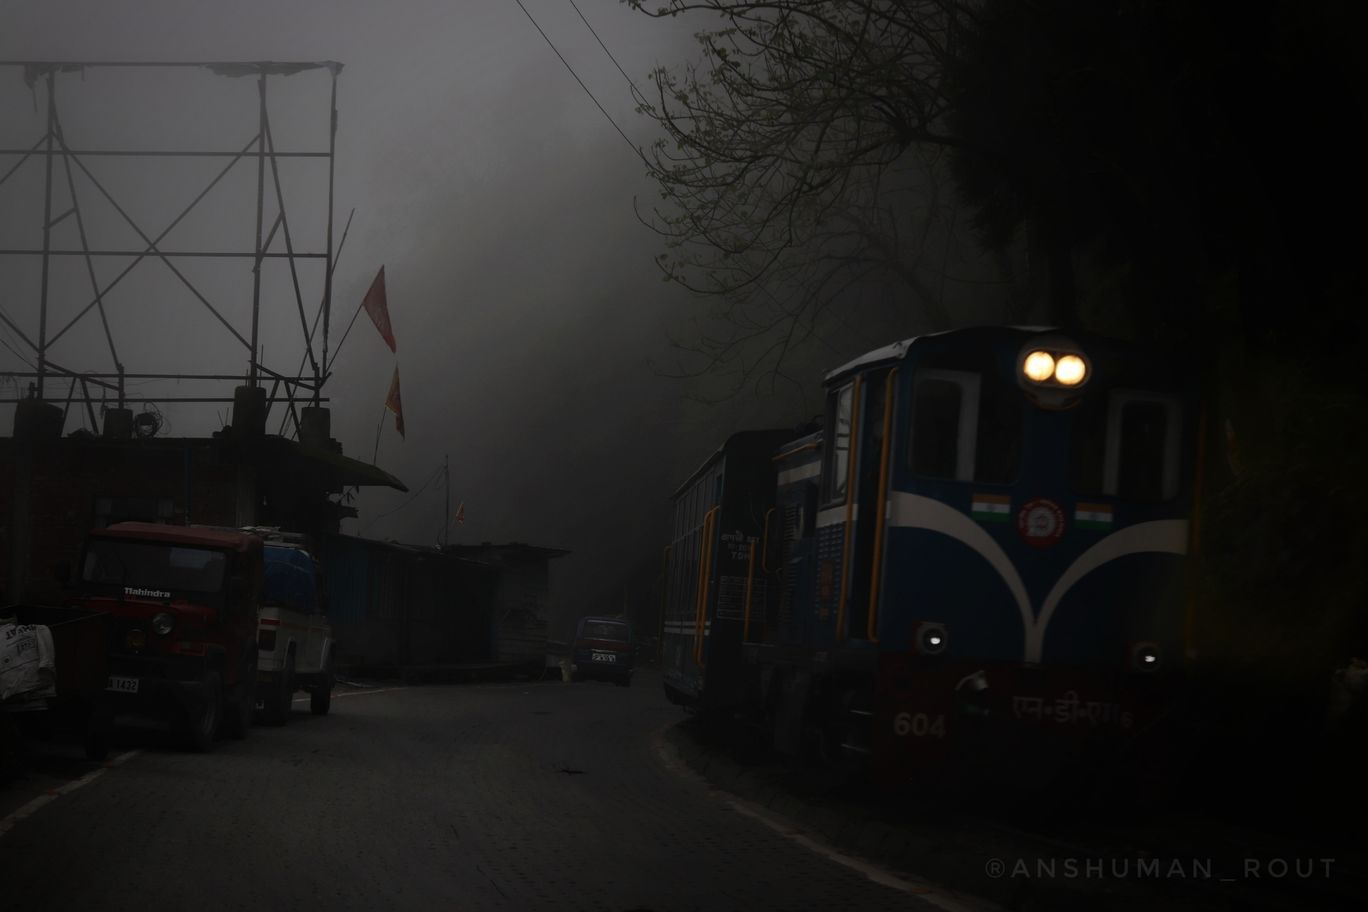 Photo of Darjeeling By Anshuman Rout